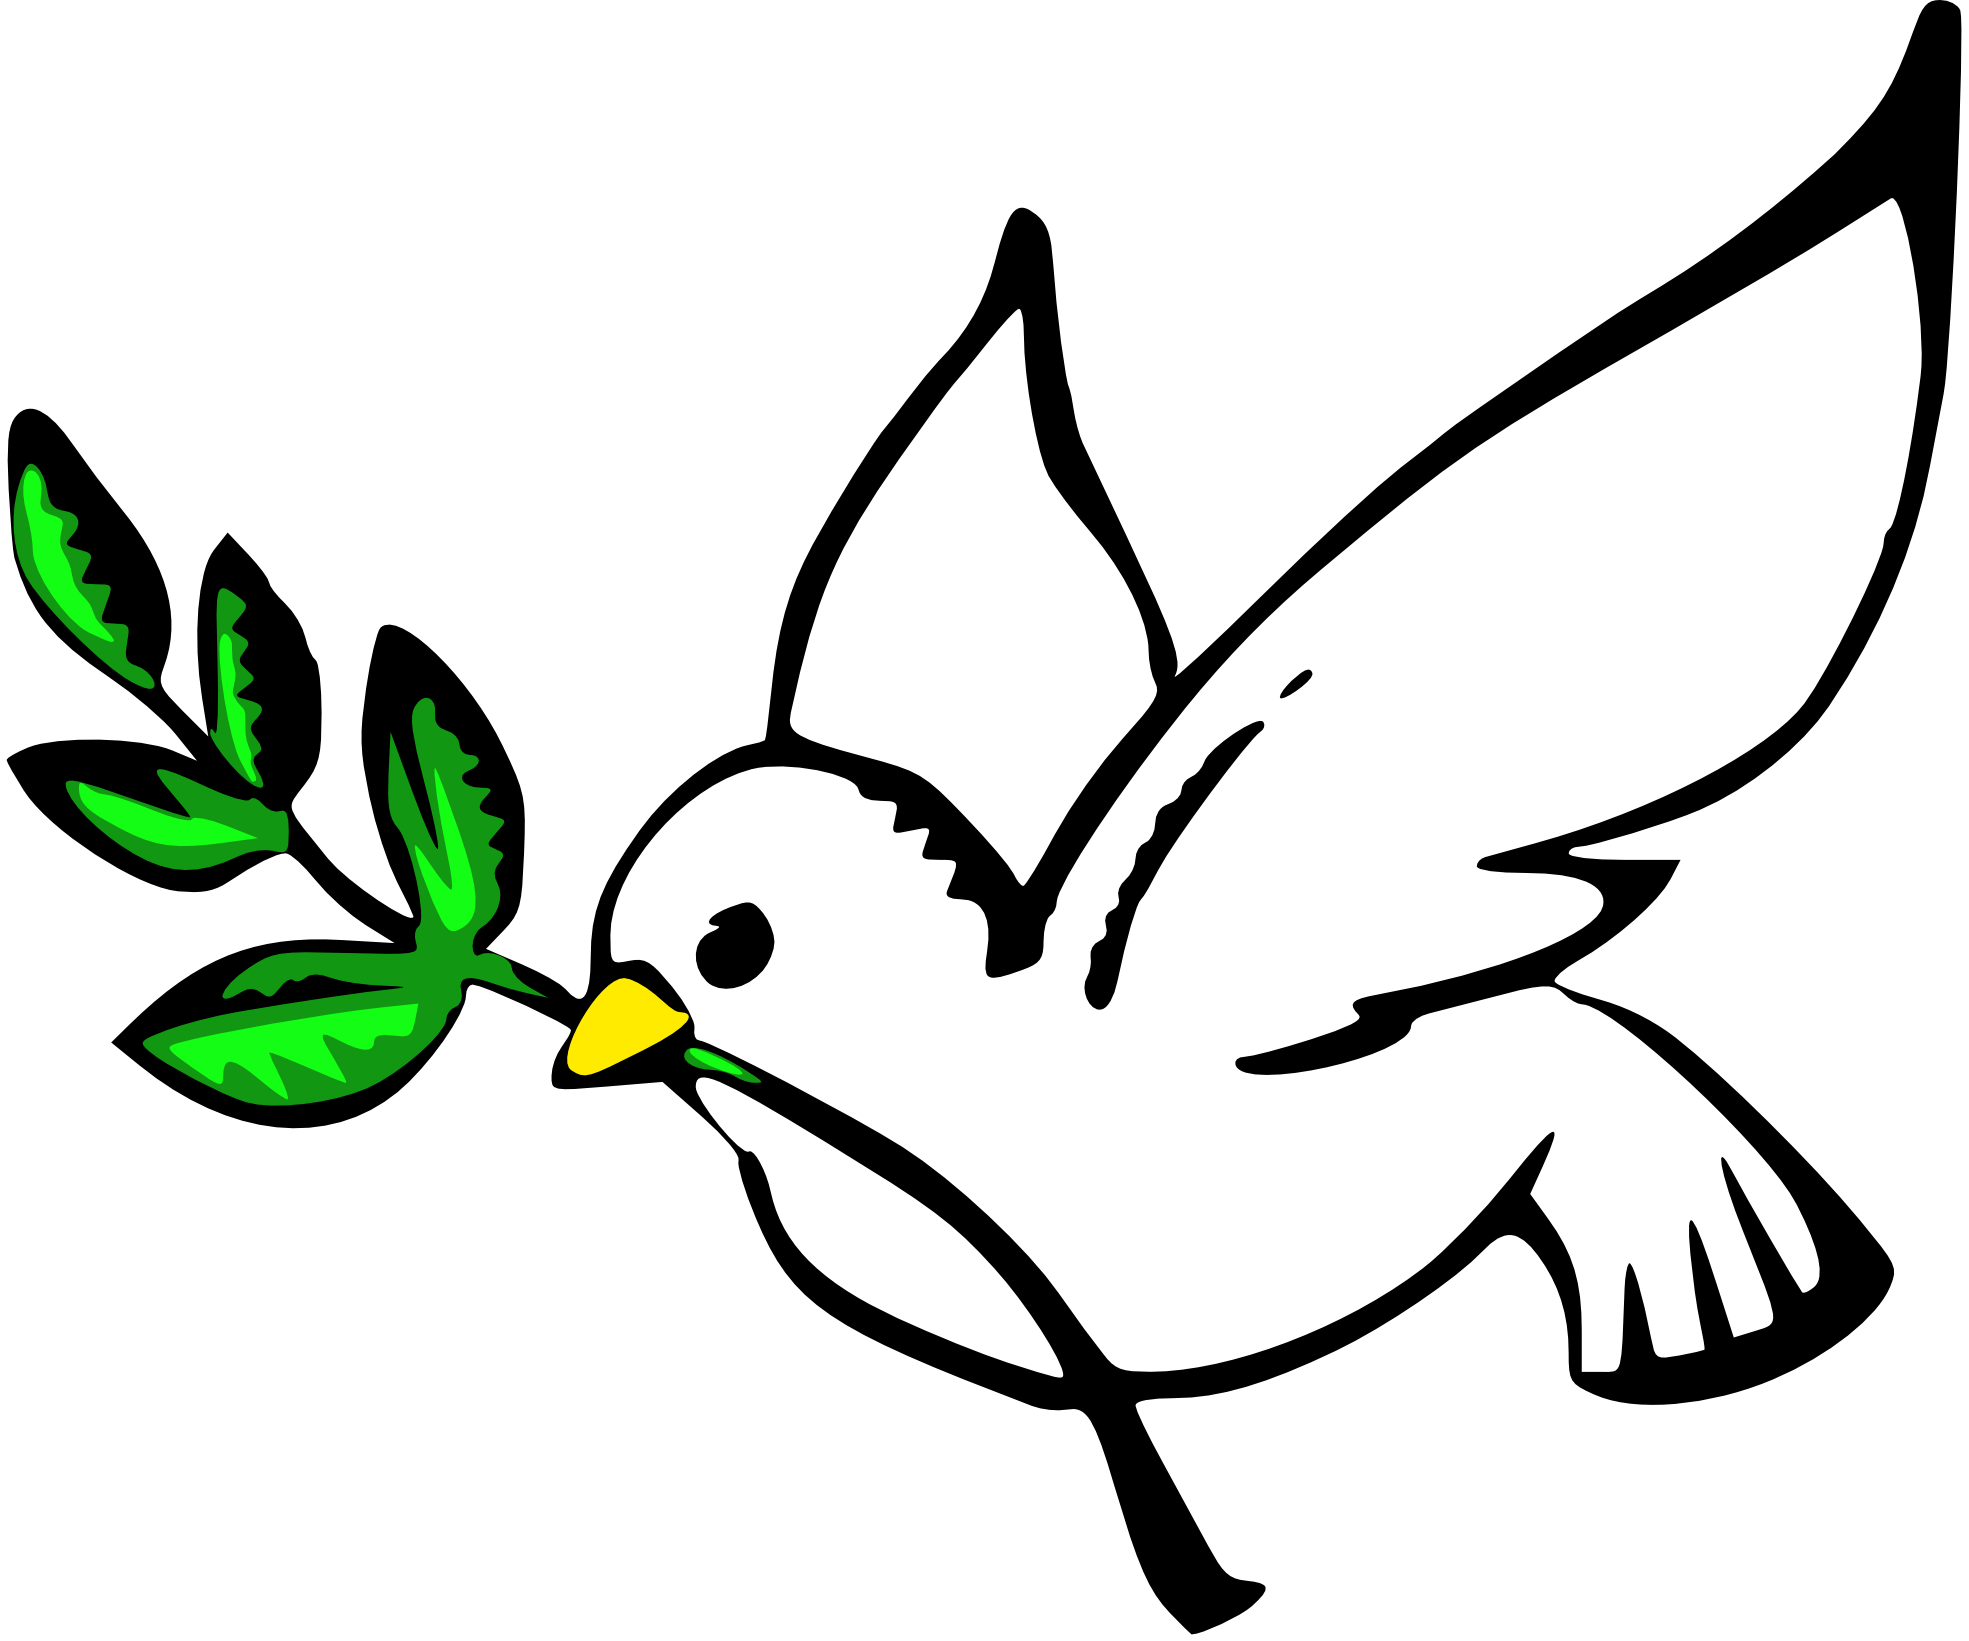 hight resolution of peace sign image free clip art